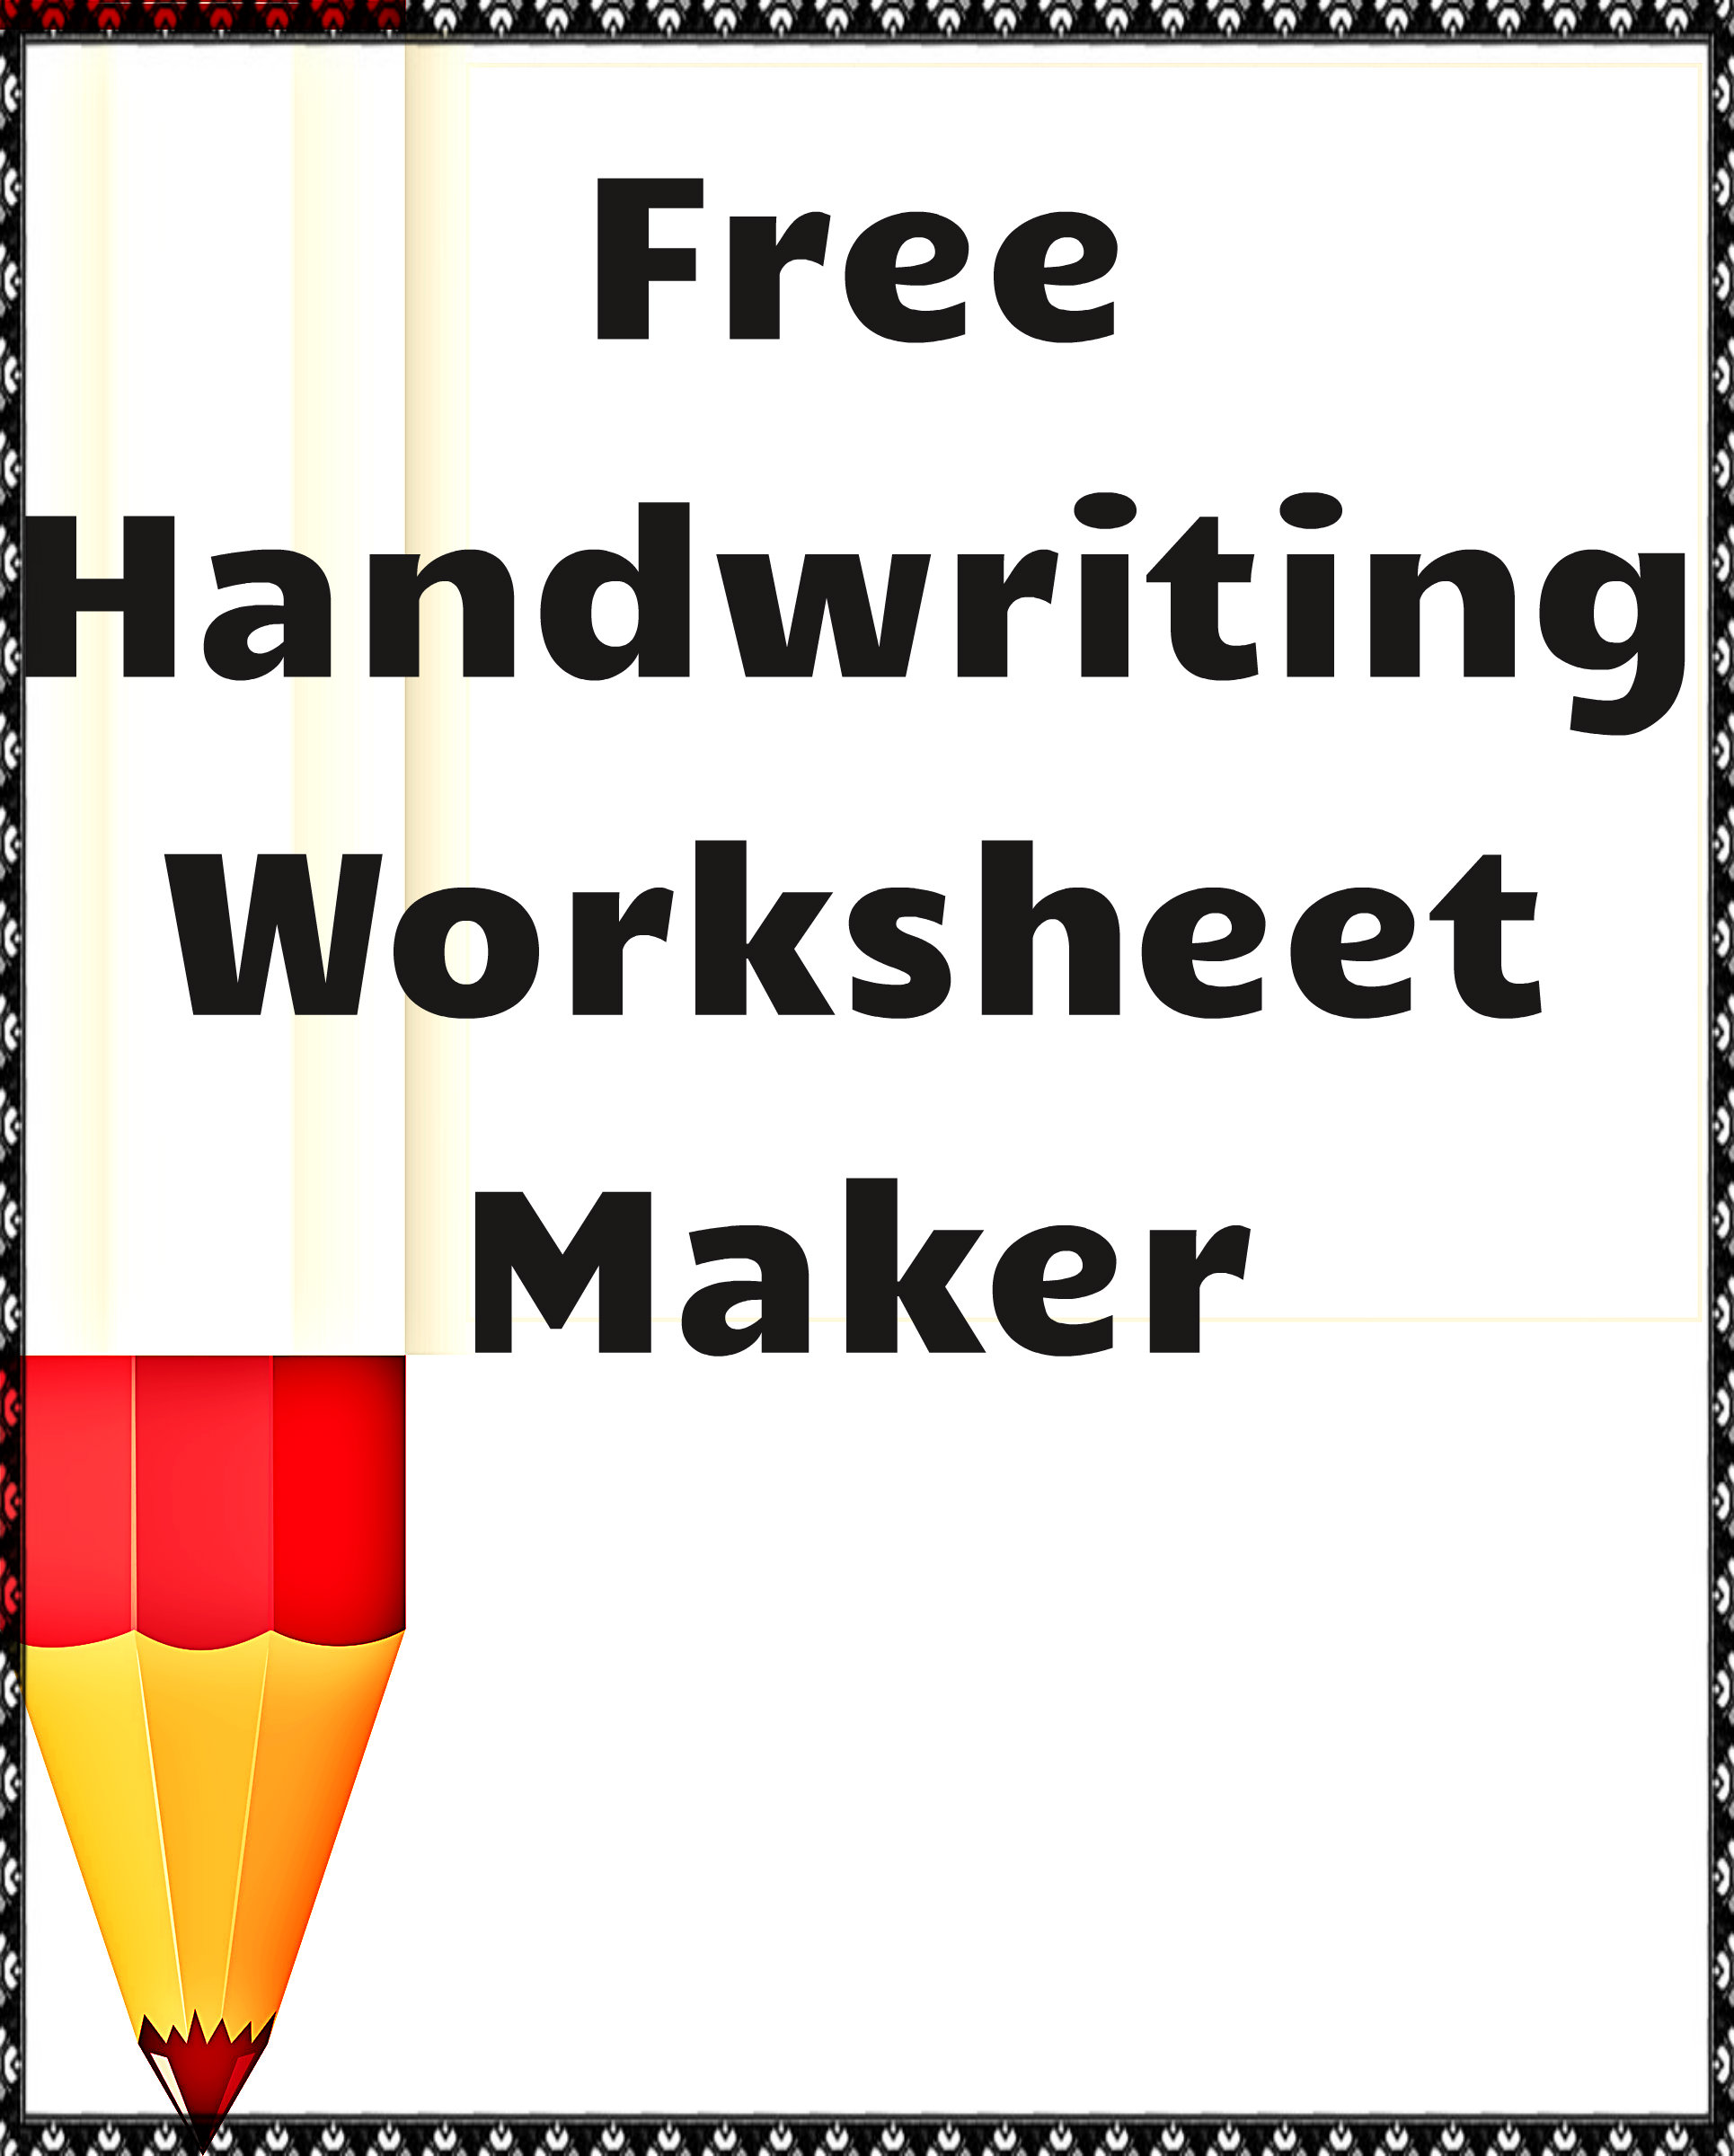 Printables Handwriting Worksheet Maker For Kindergarten handwriting worksheet maker free classroom tools readyteacher com maker